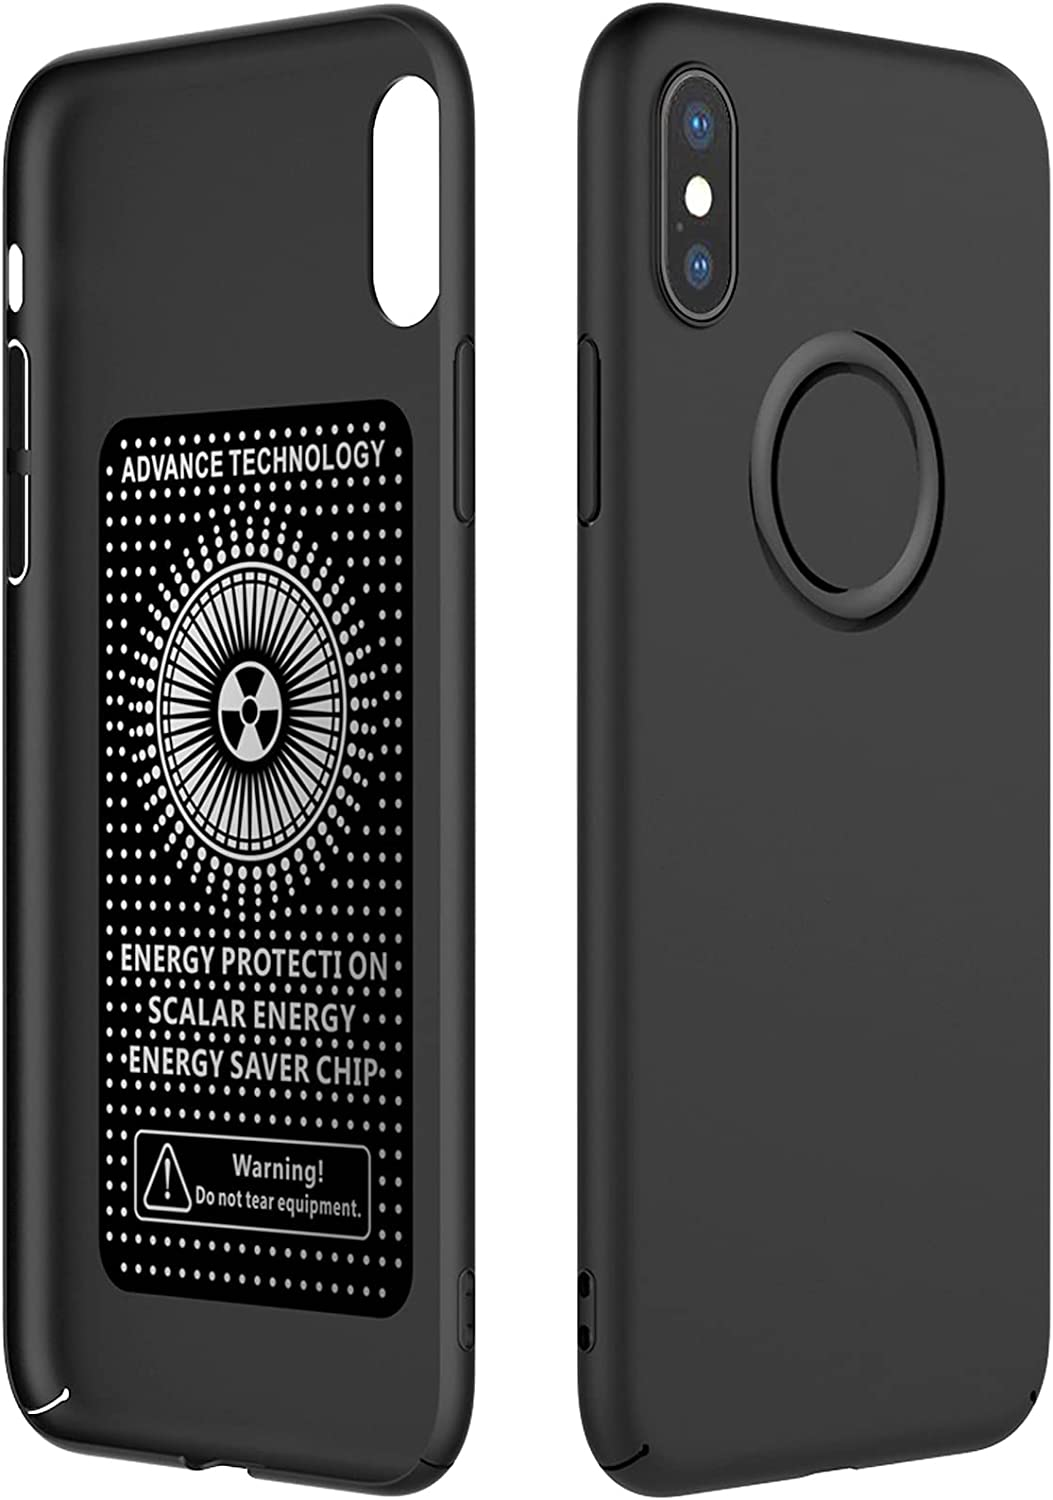 YUEKAI Discount Gorgeous is also underway E-M-F Protection Cell Phone Case iPhone Xs Max 99% for A